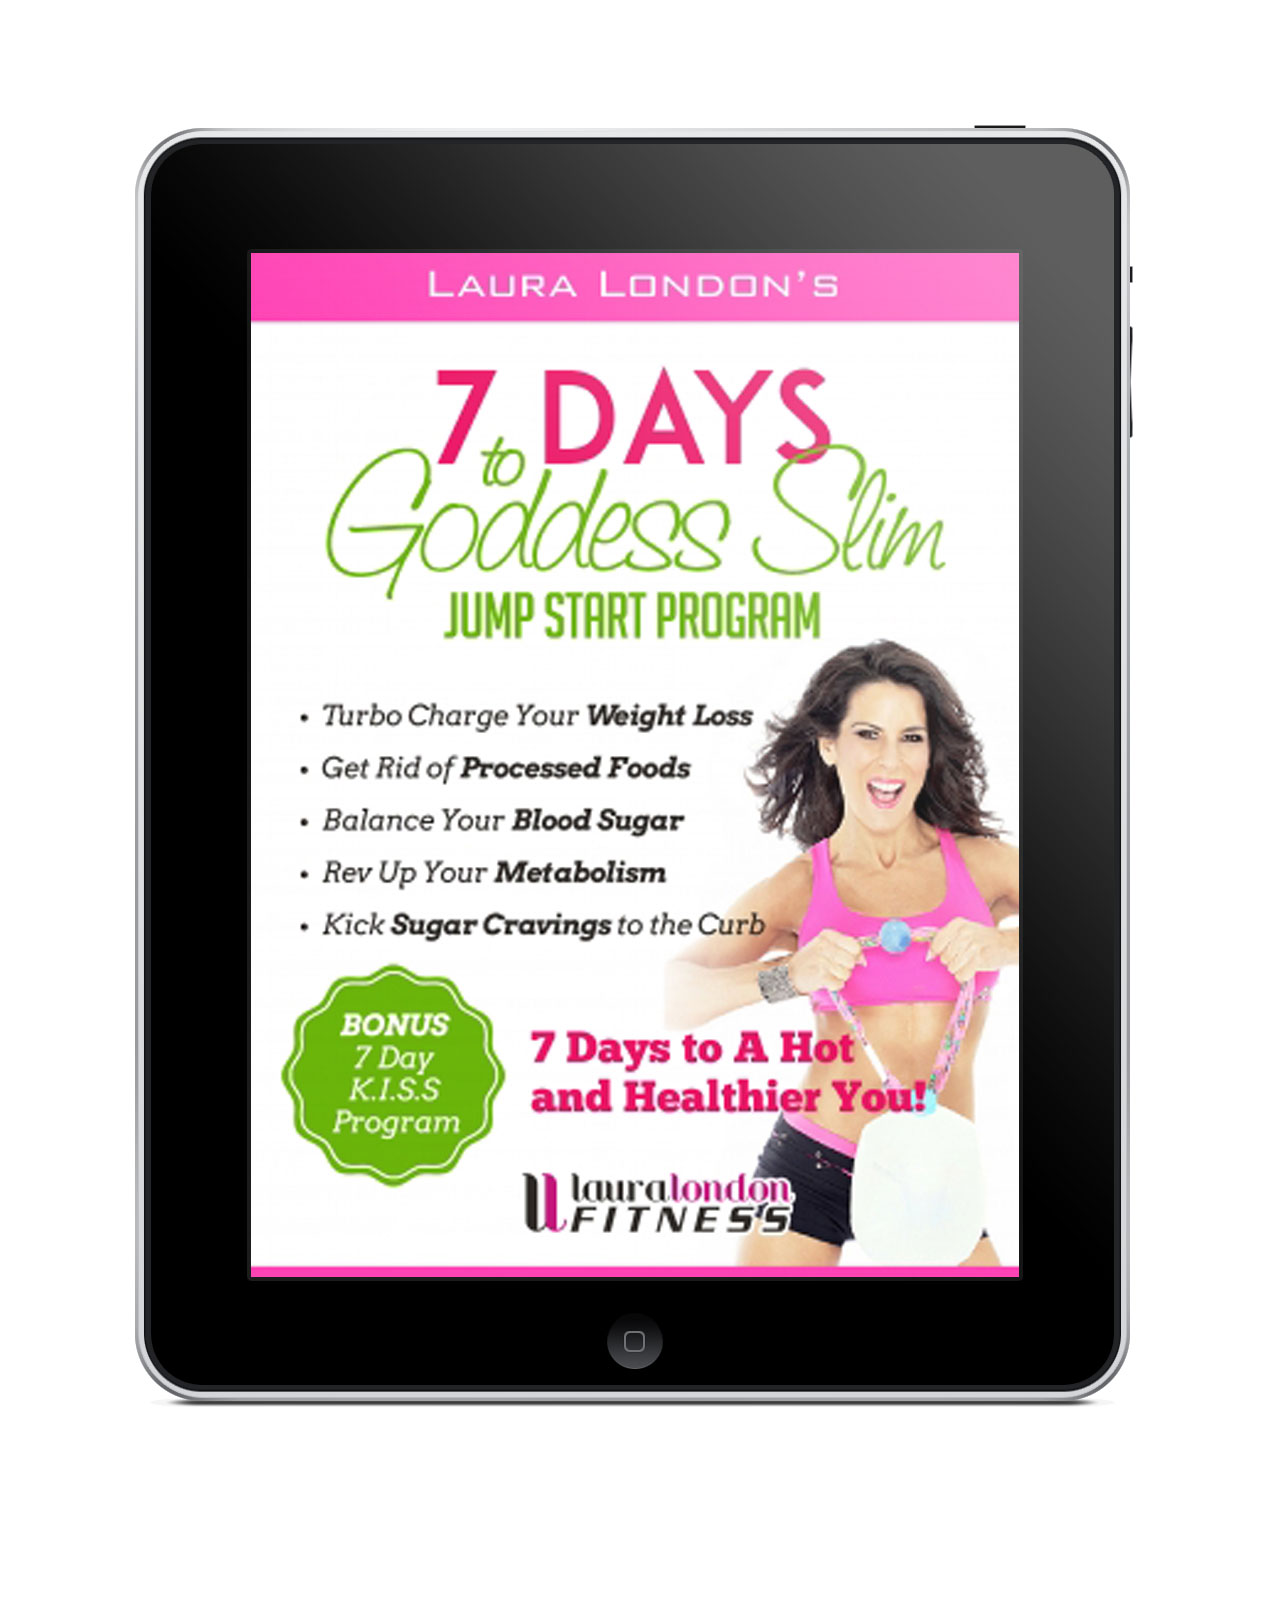 7 days to Goddess Slim Jump Start Program